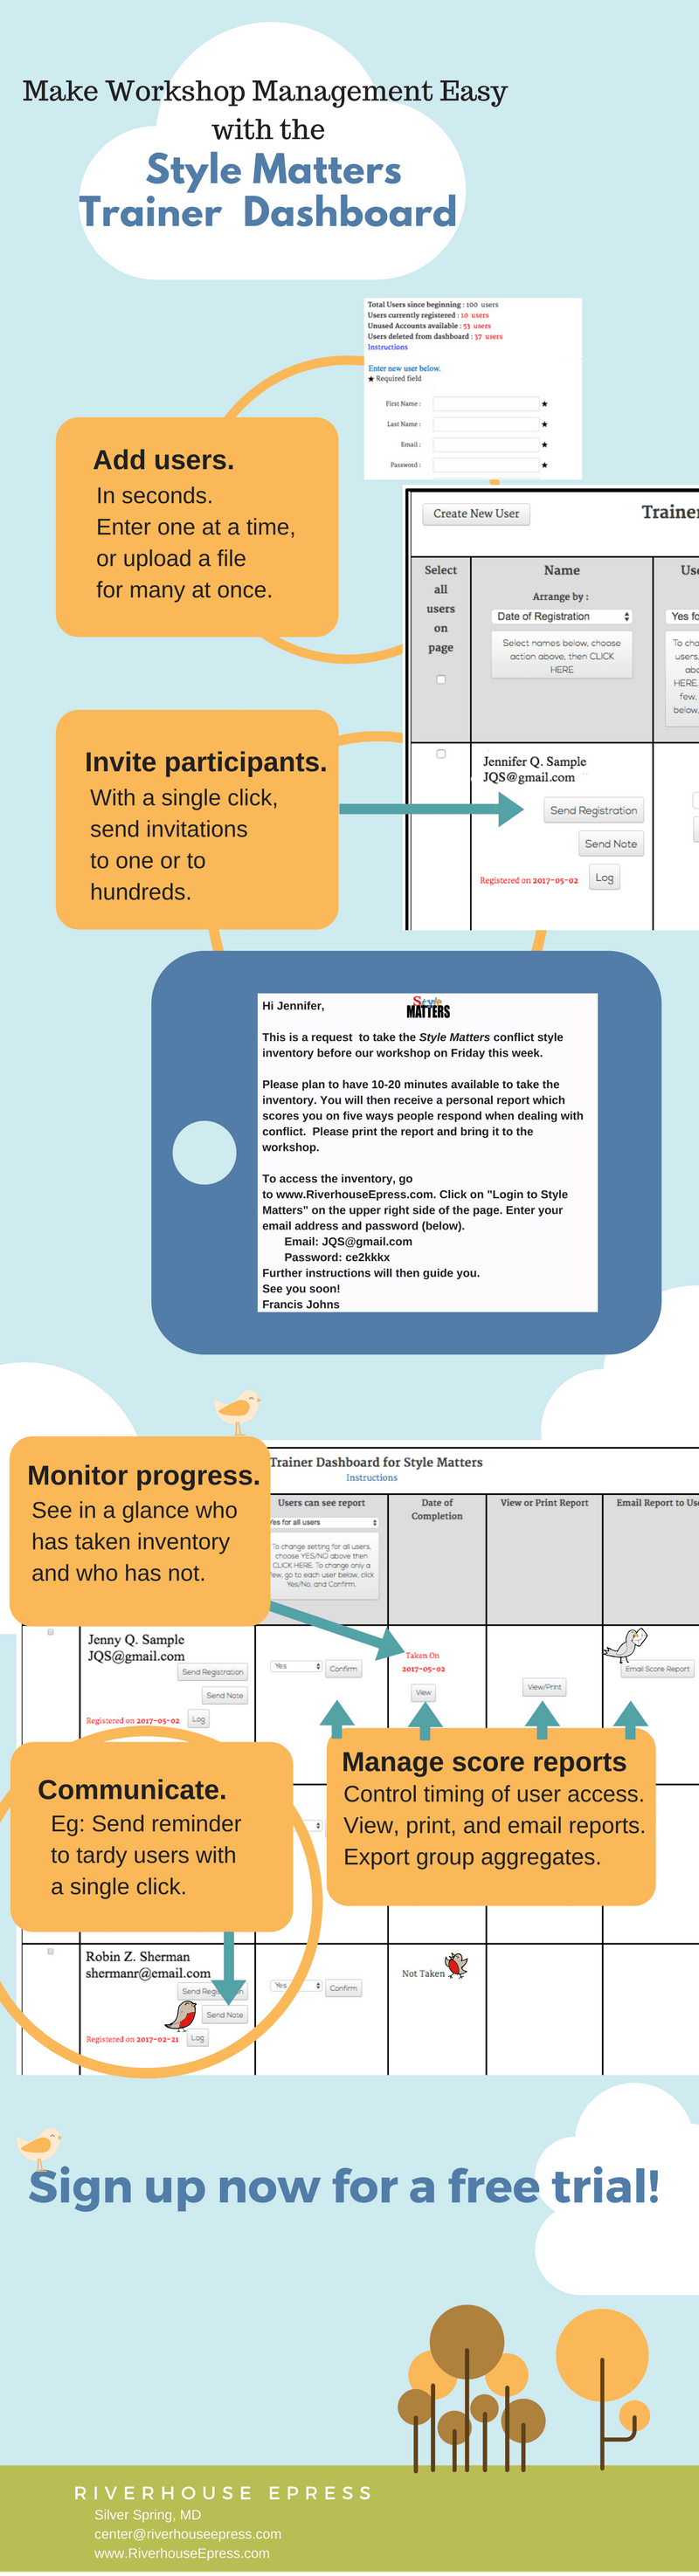 TrainersUseStyle MattersDashboard